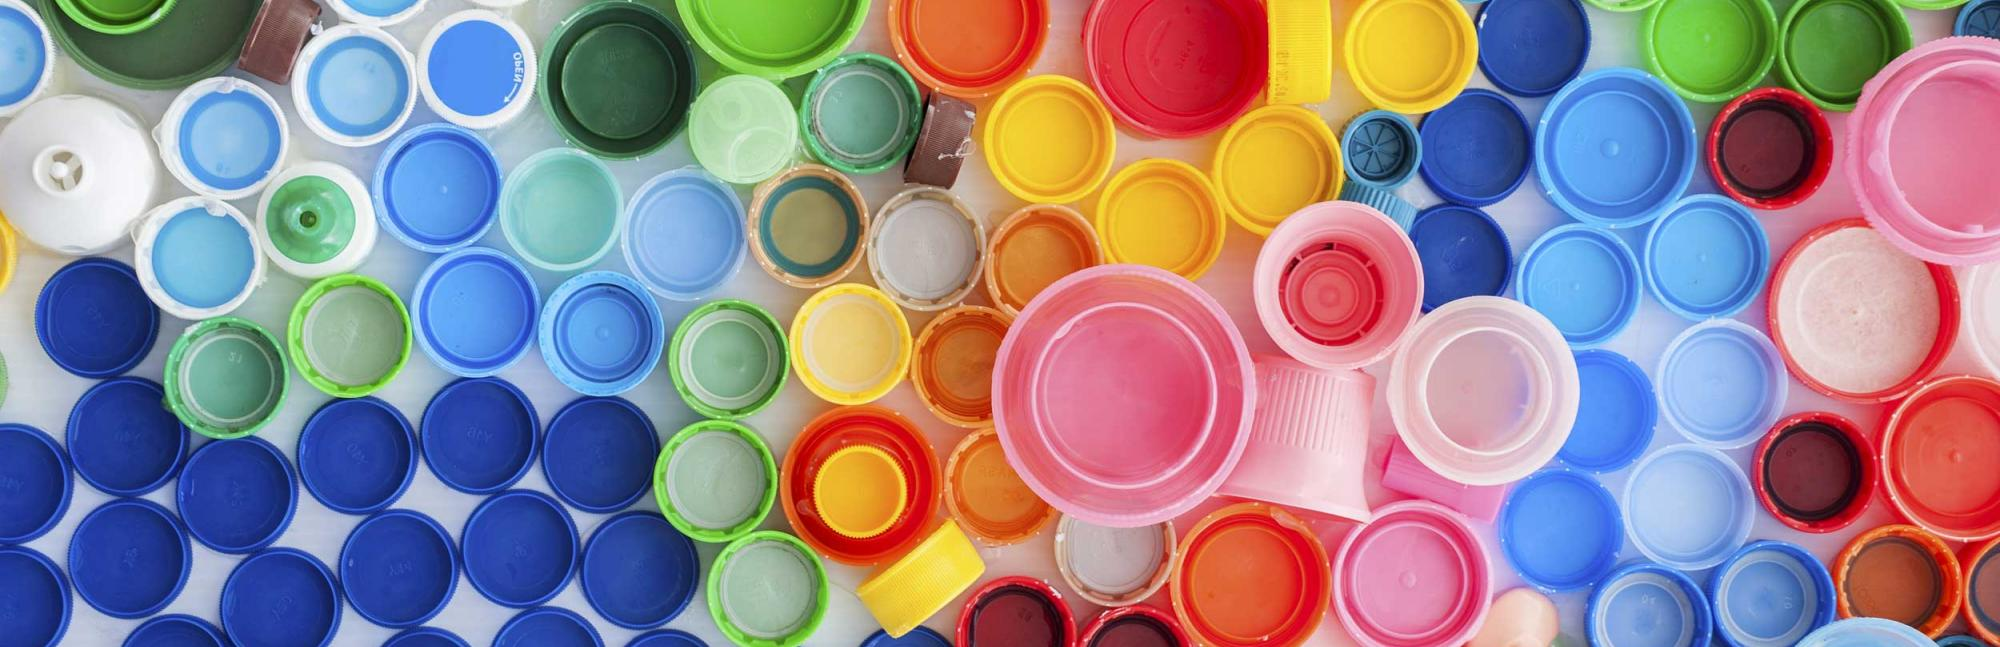 Lots of brightly coloured plastic bottle lids